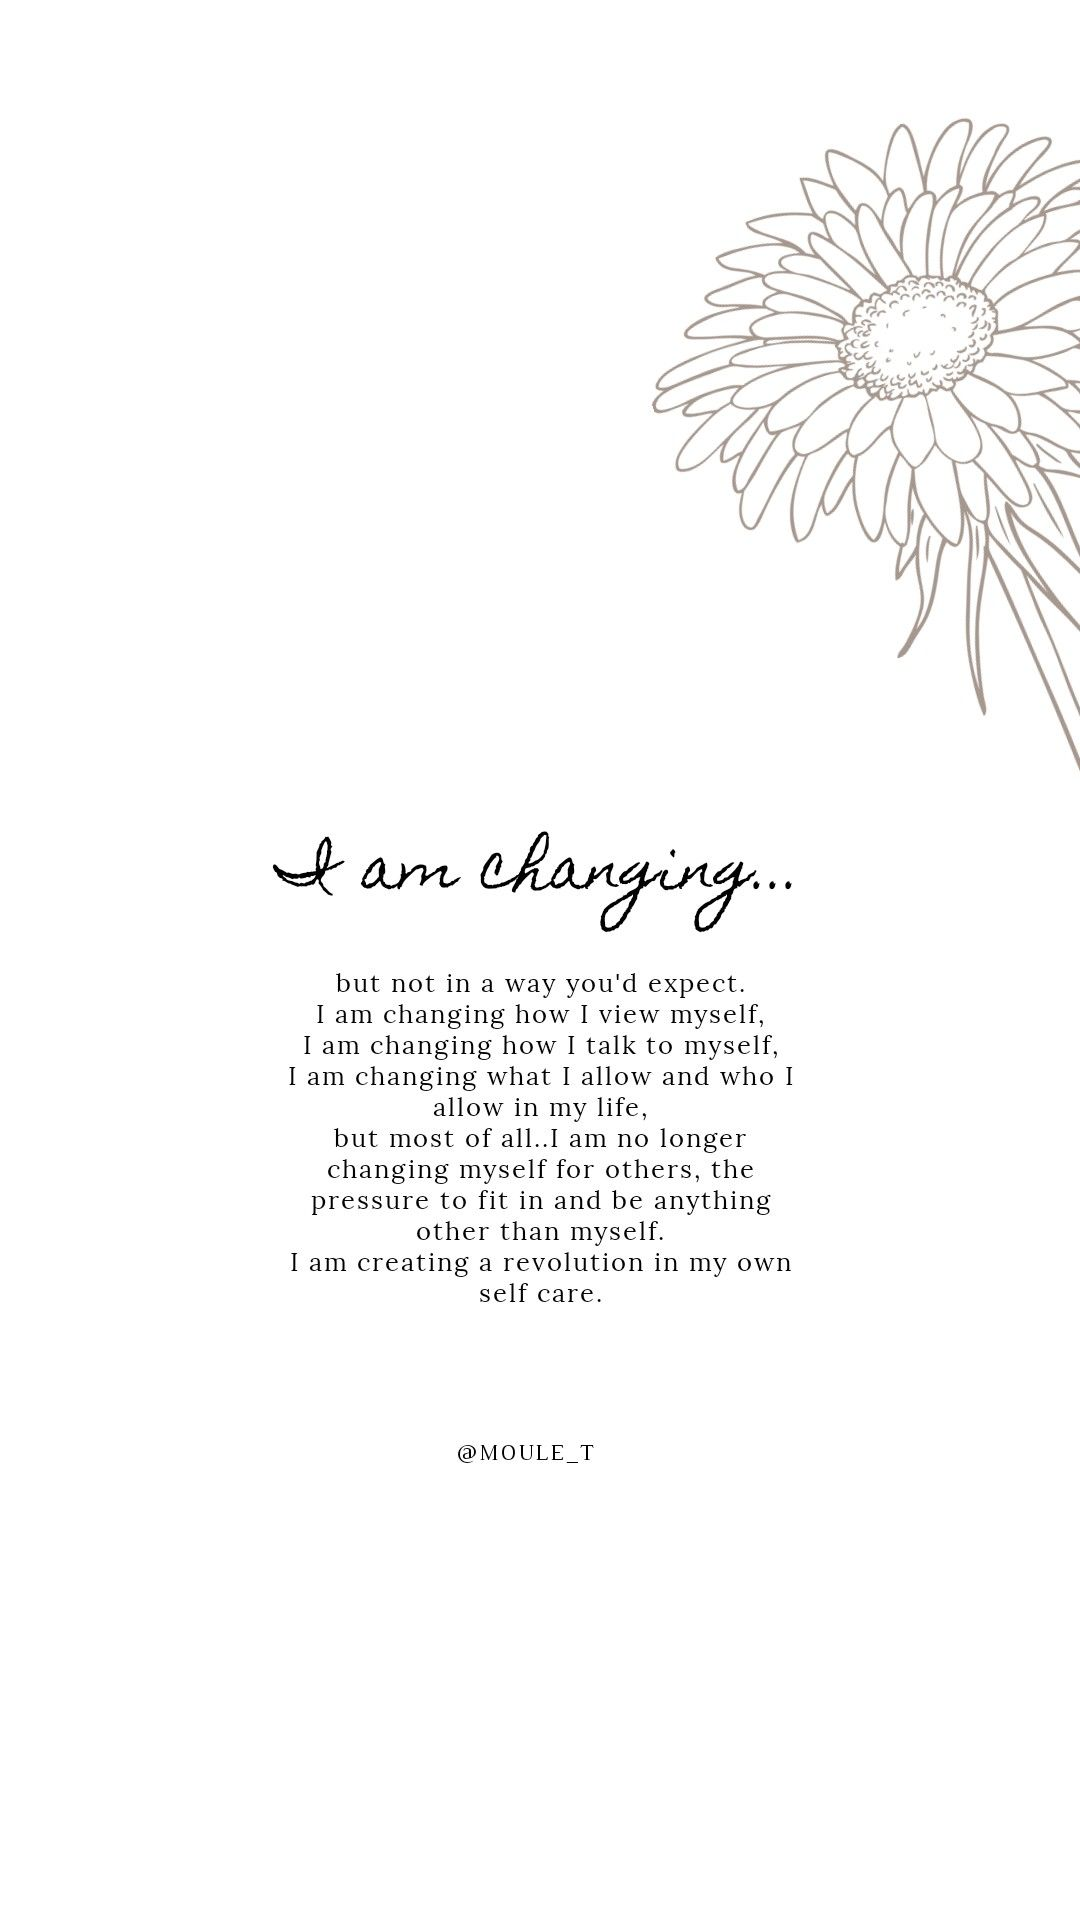 I am changing, for me, and creating a revolution in my own self